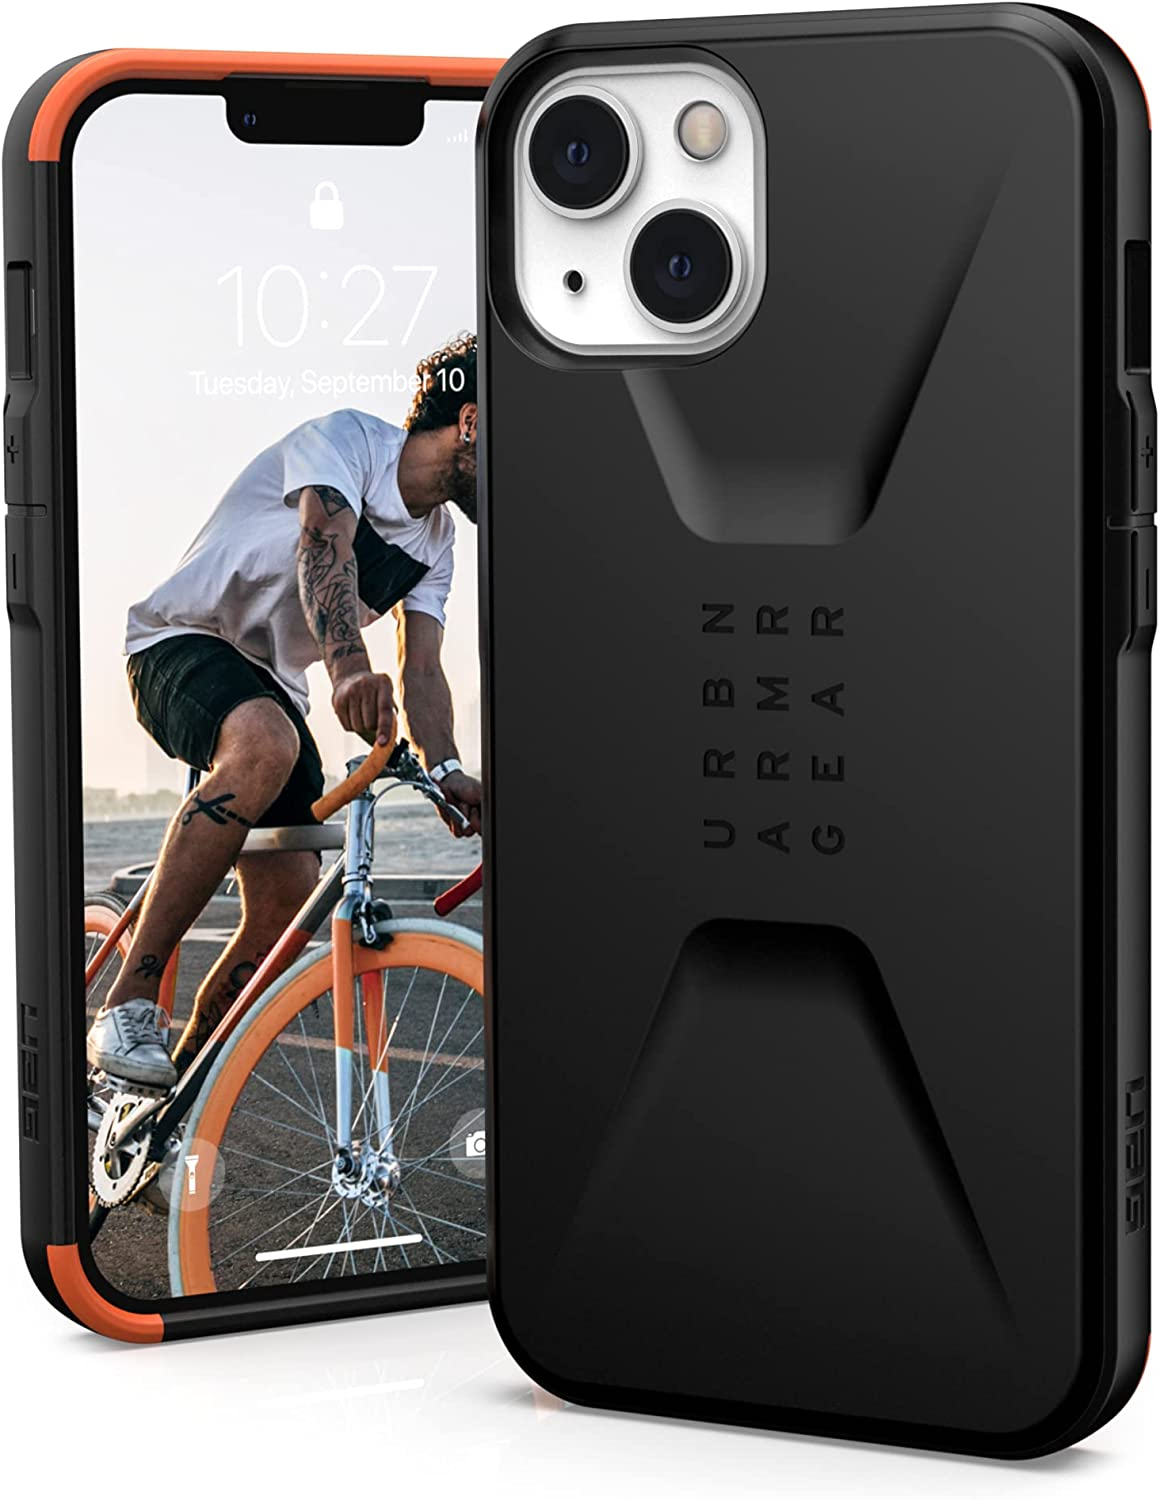 URBAN ARMOR GEAR UAG Designed for iPhone 13 Case [6.1-inch Screen] Sleek Ultra-Thin Shock-Absorbent Civilian Protective Cover, Black